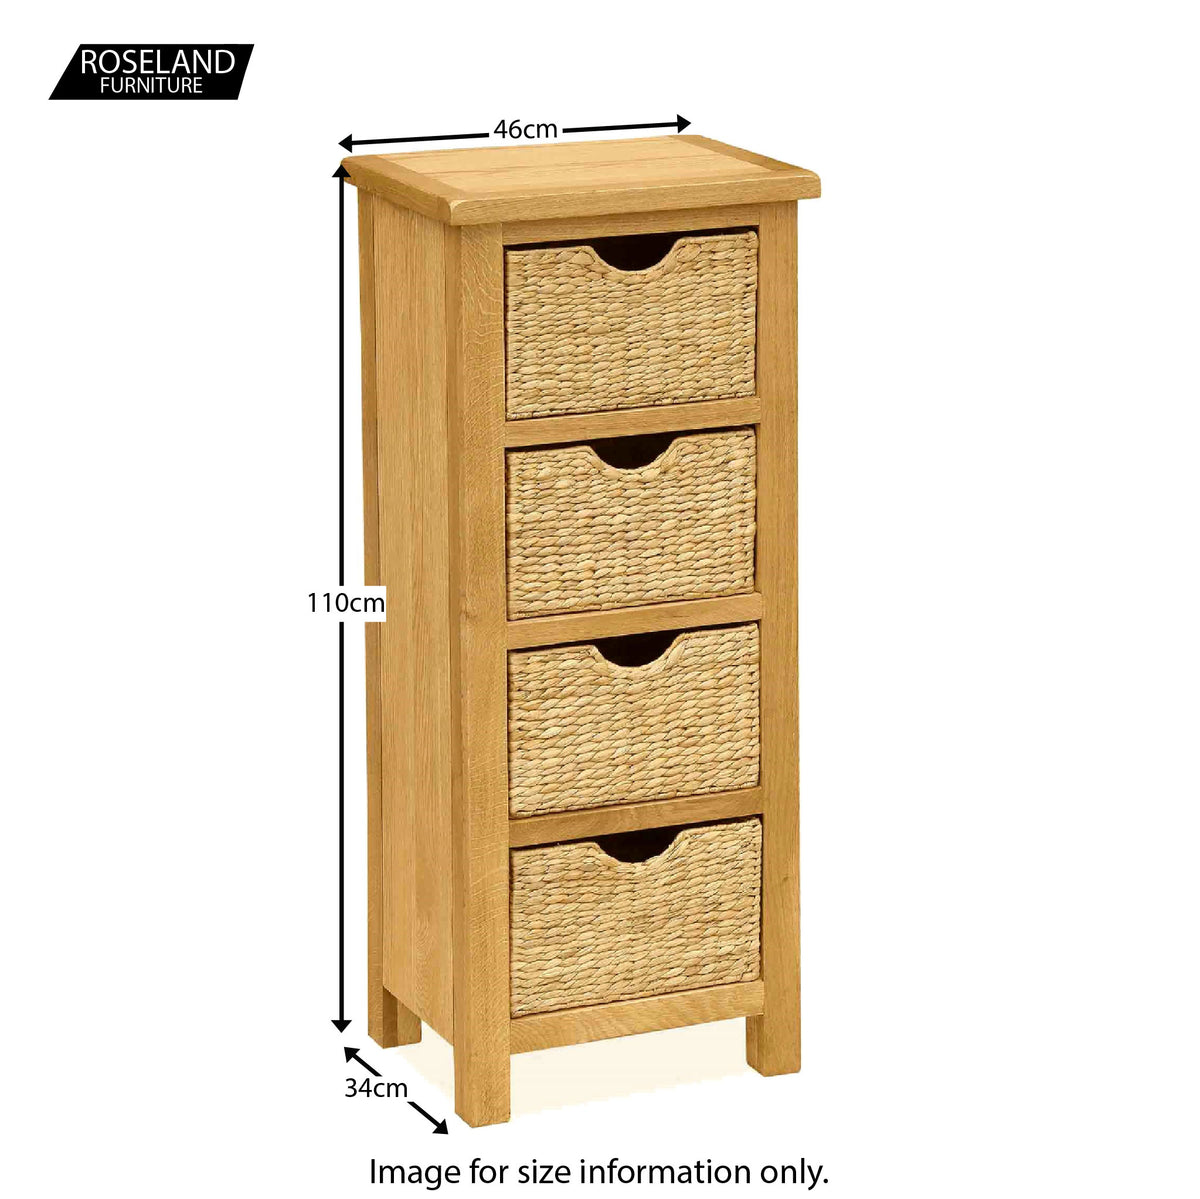 Surrey Oak Tallboy with Baskets - Size Guide